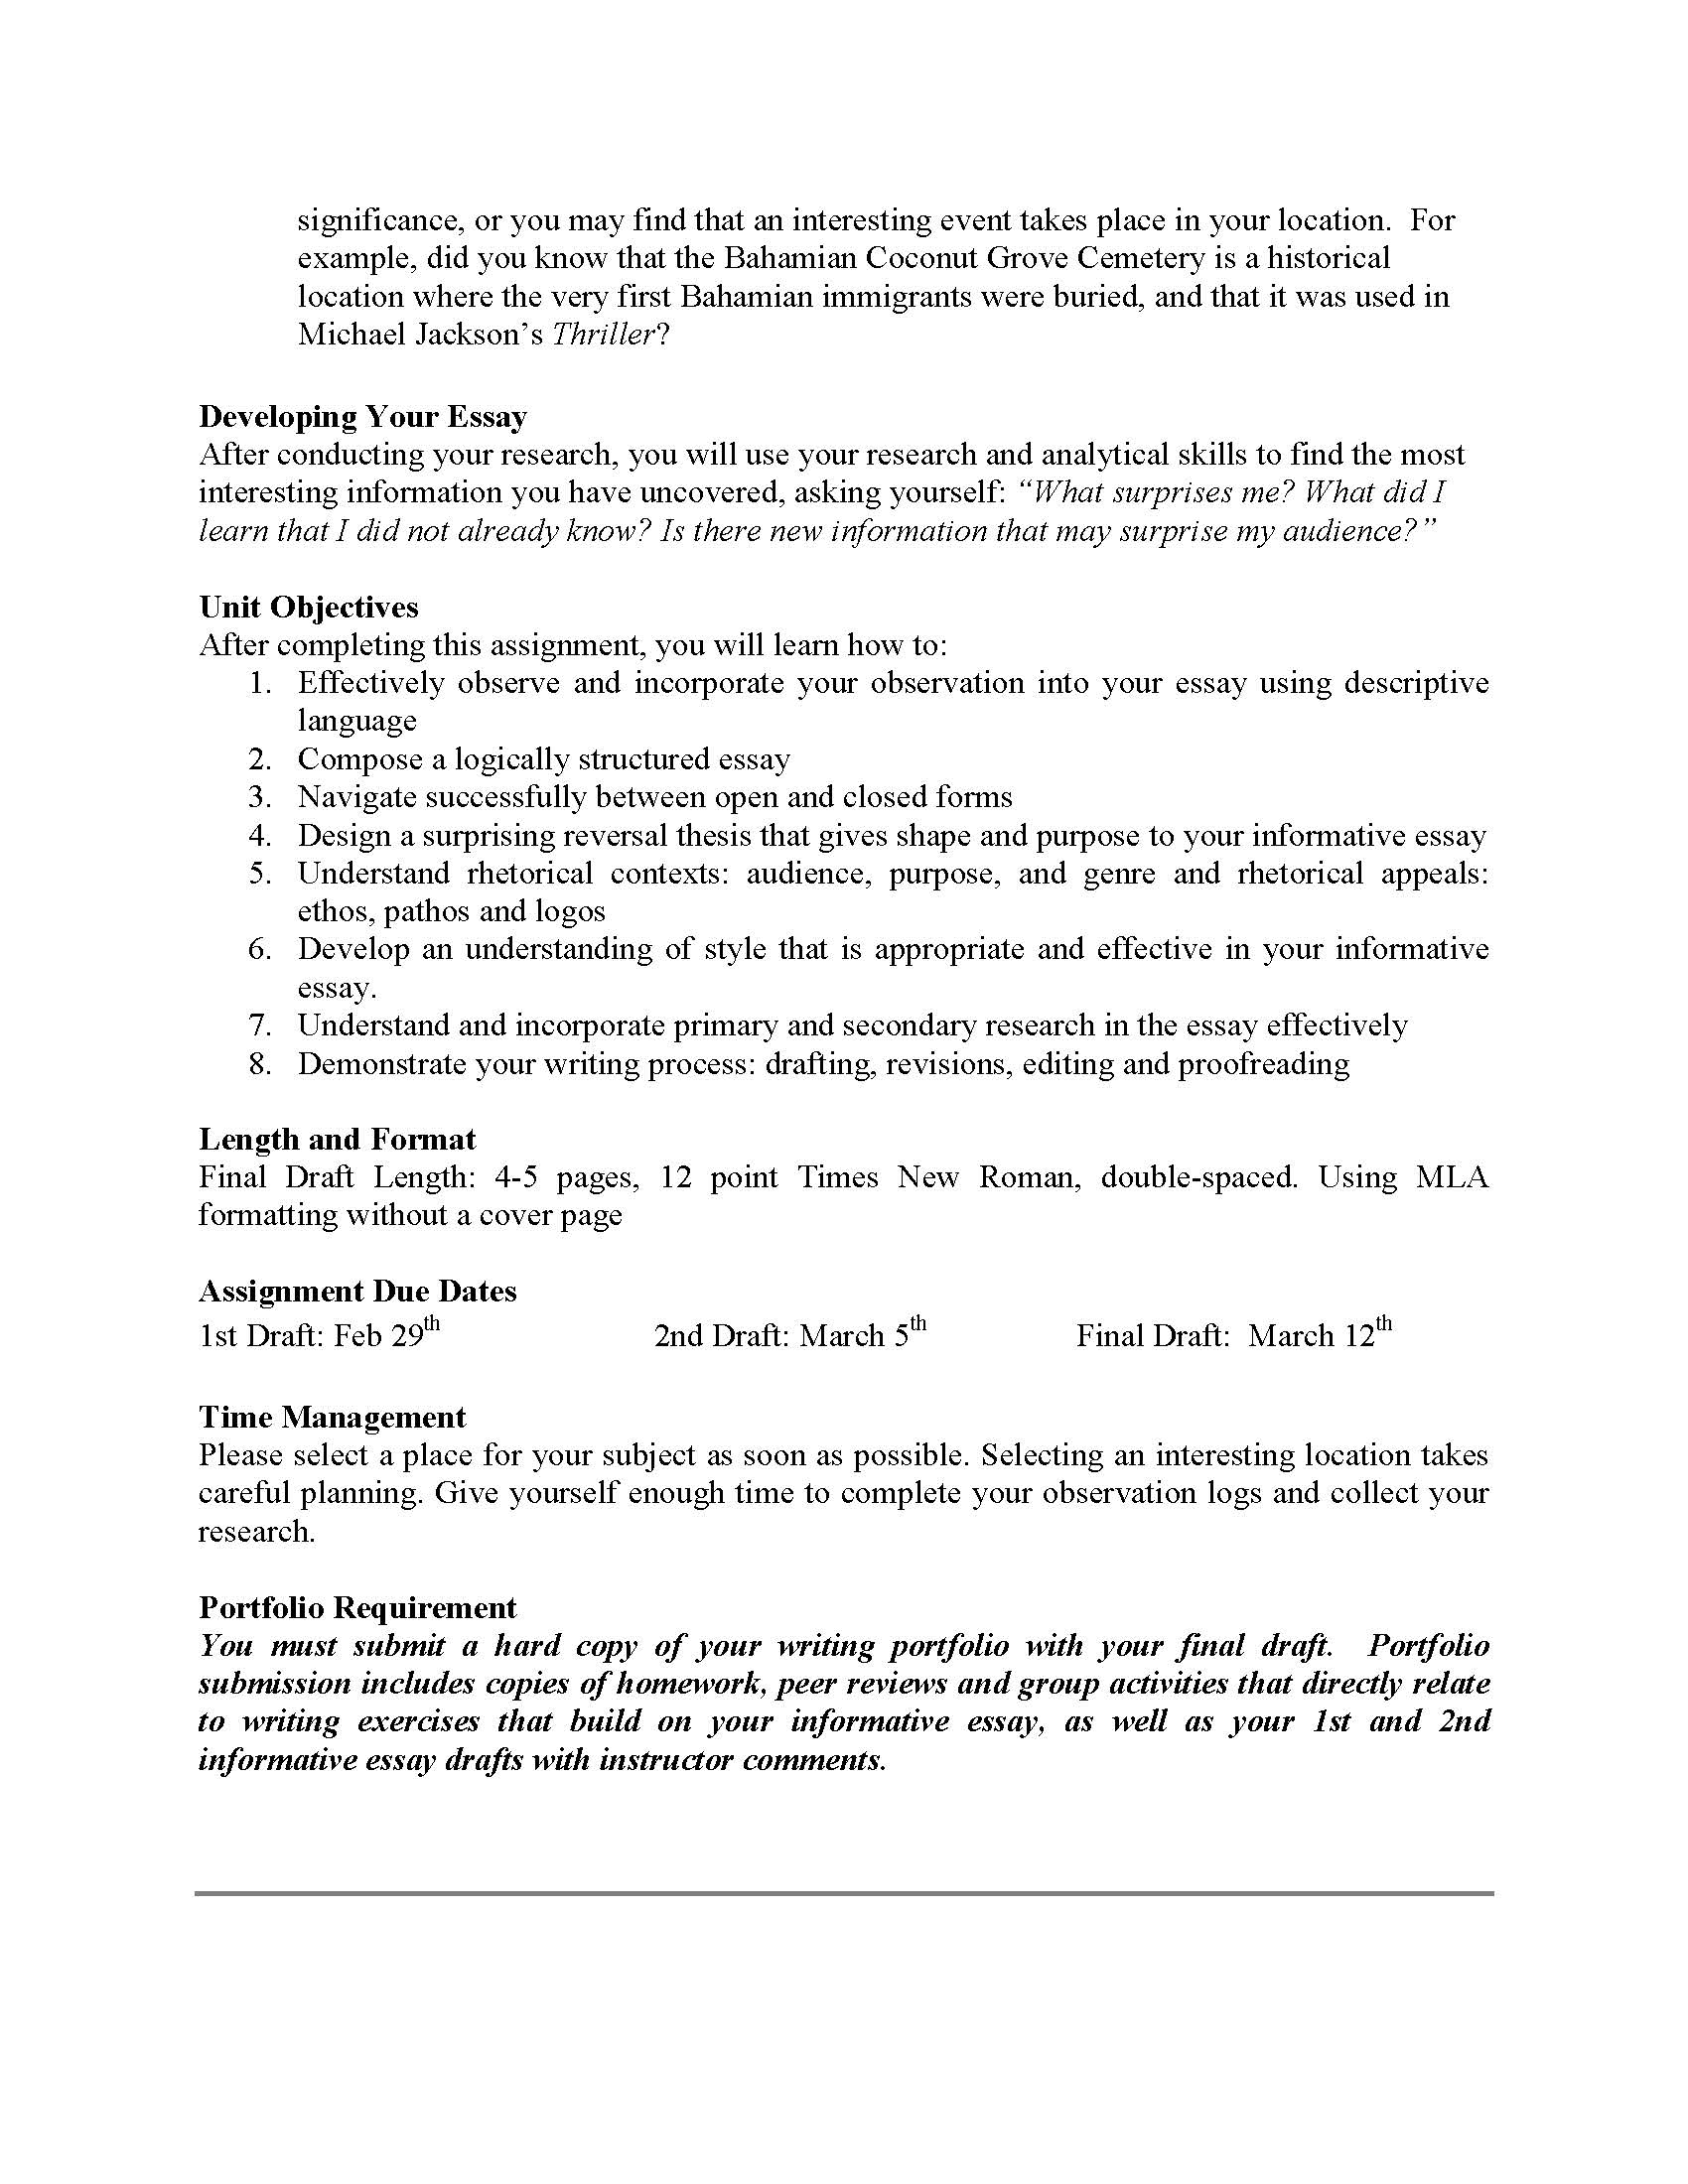 010 Informative Essay Ideas Unit Assignment Page 2 Wondrous Writing Prompts 5th Grade Common Core Expository 4th Pdf Full